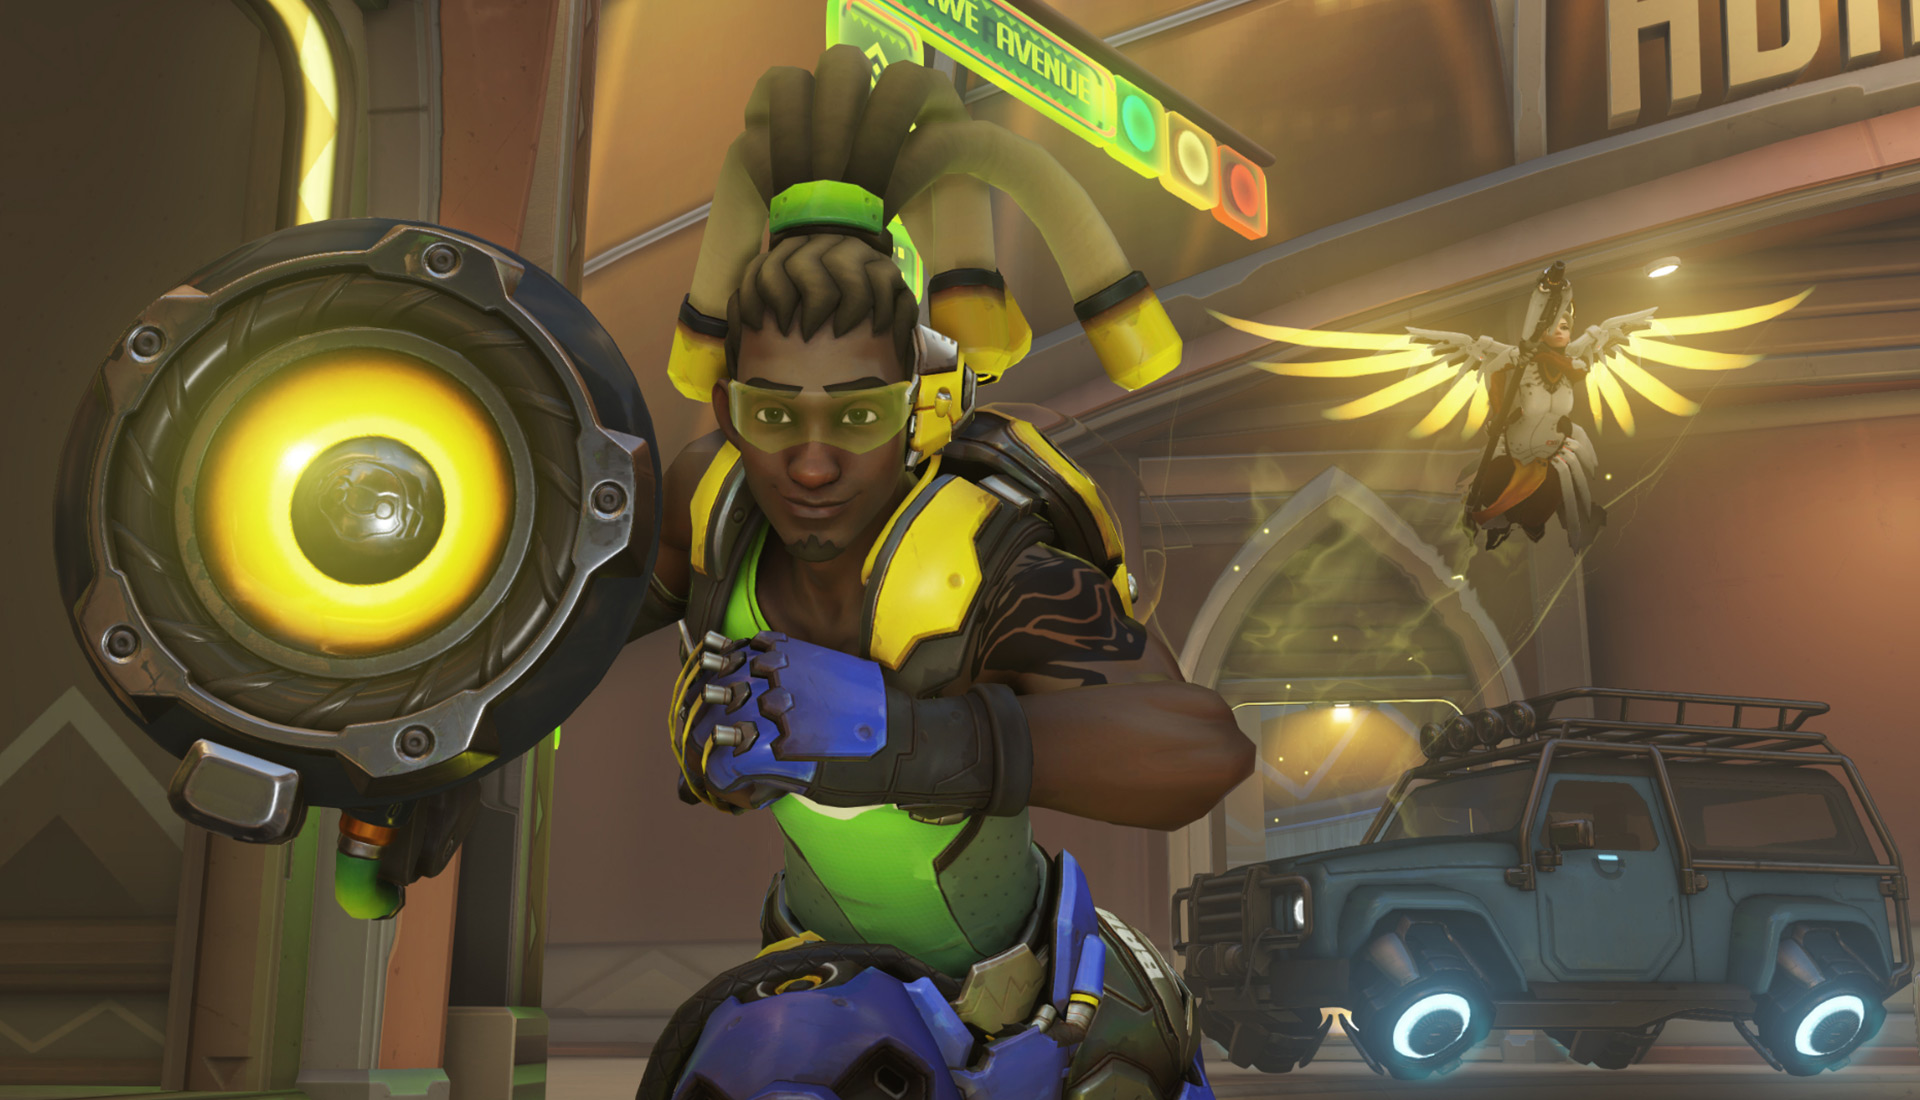 lucio screenshot 002 - Is Overwatch's Mercy Underpowered and Does it Affect the Game's Balancing?